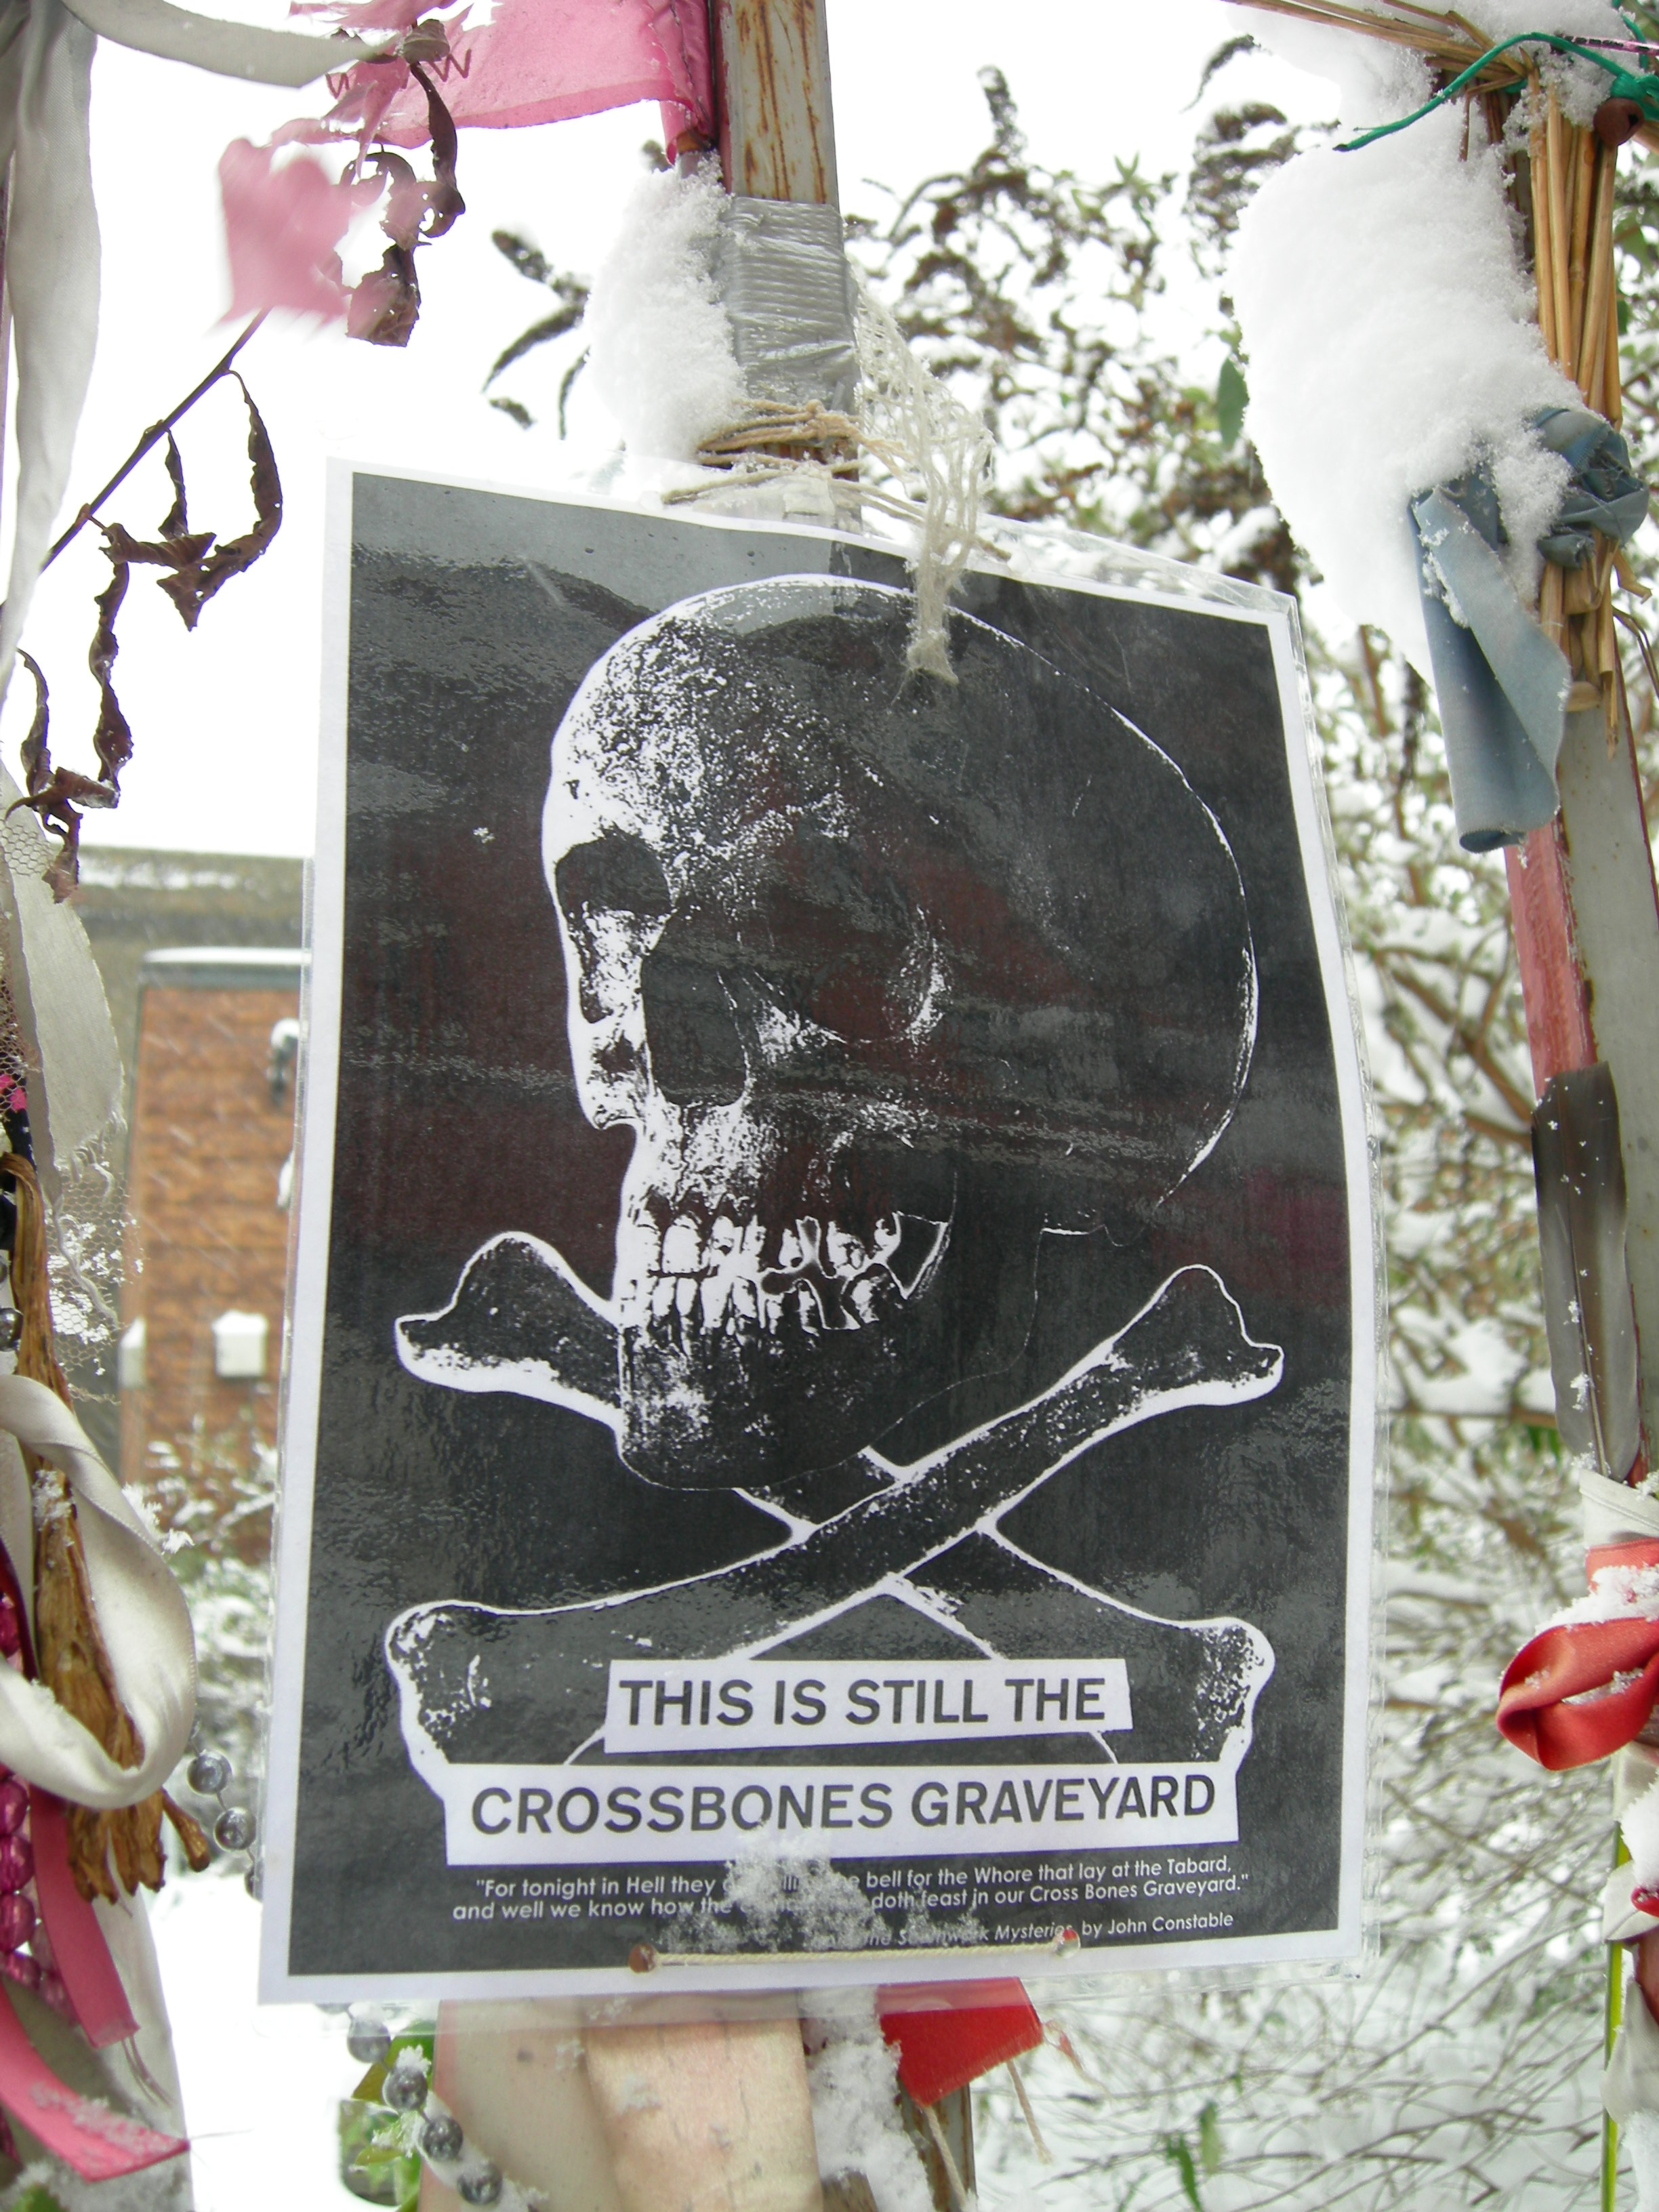 Skull of a Young Woman, Crossbones. Poster (c) Zanna. Poem (c) John Constable. Photo (c) Katy Nicholls